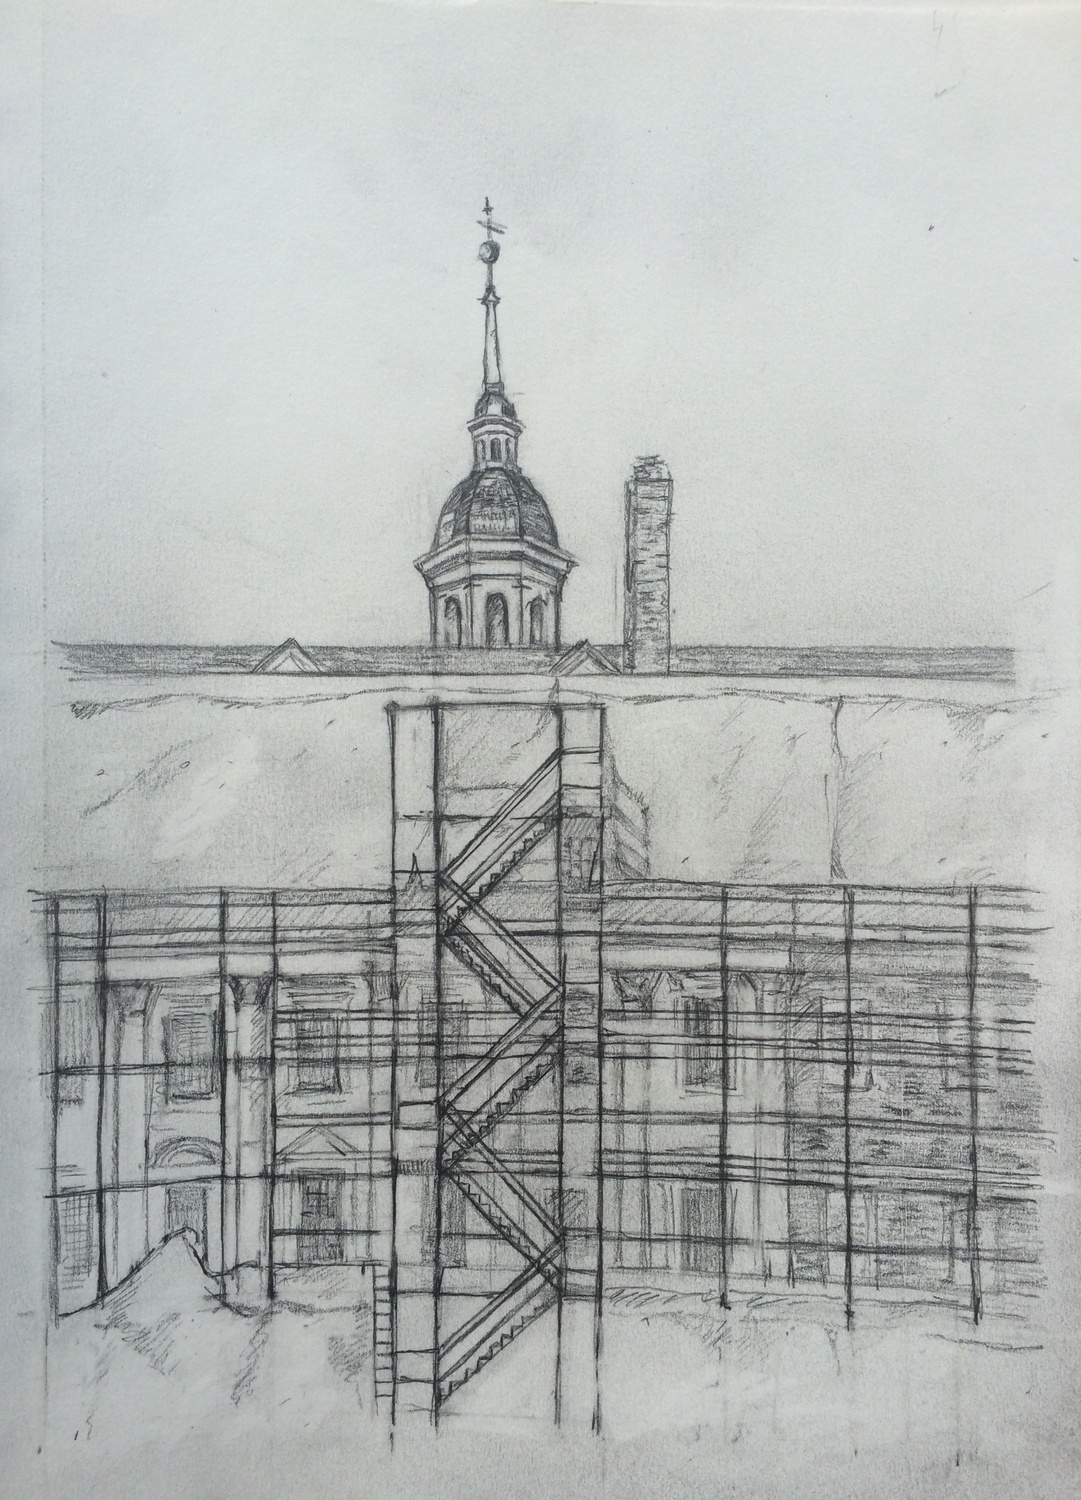 Unfinished: Winthrop House